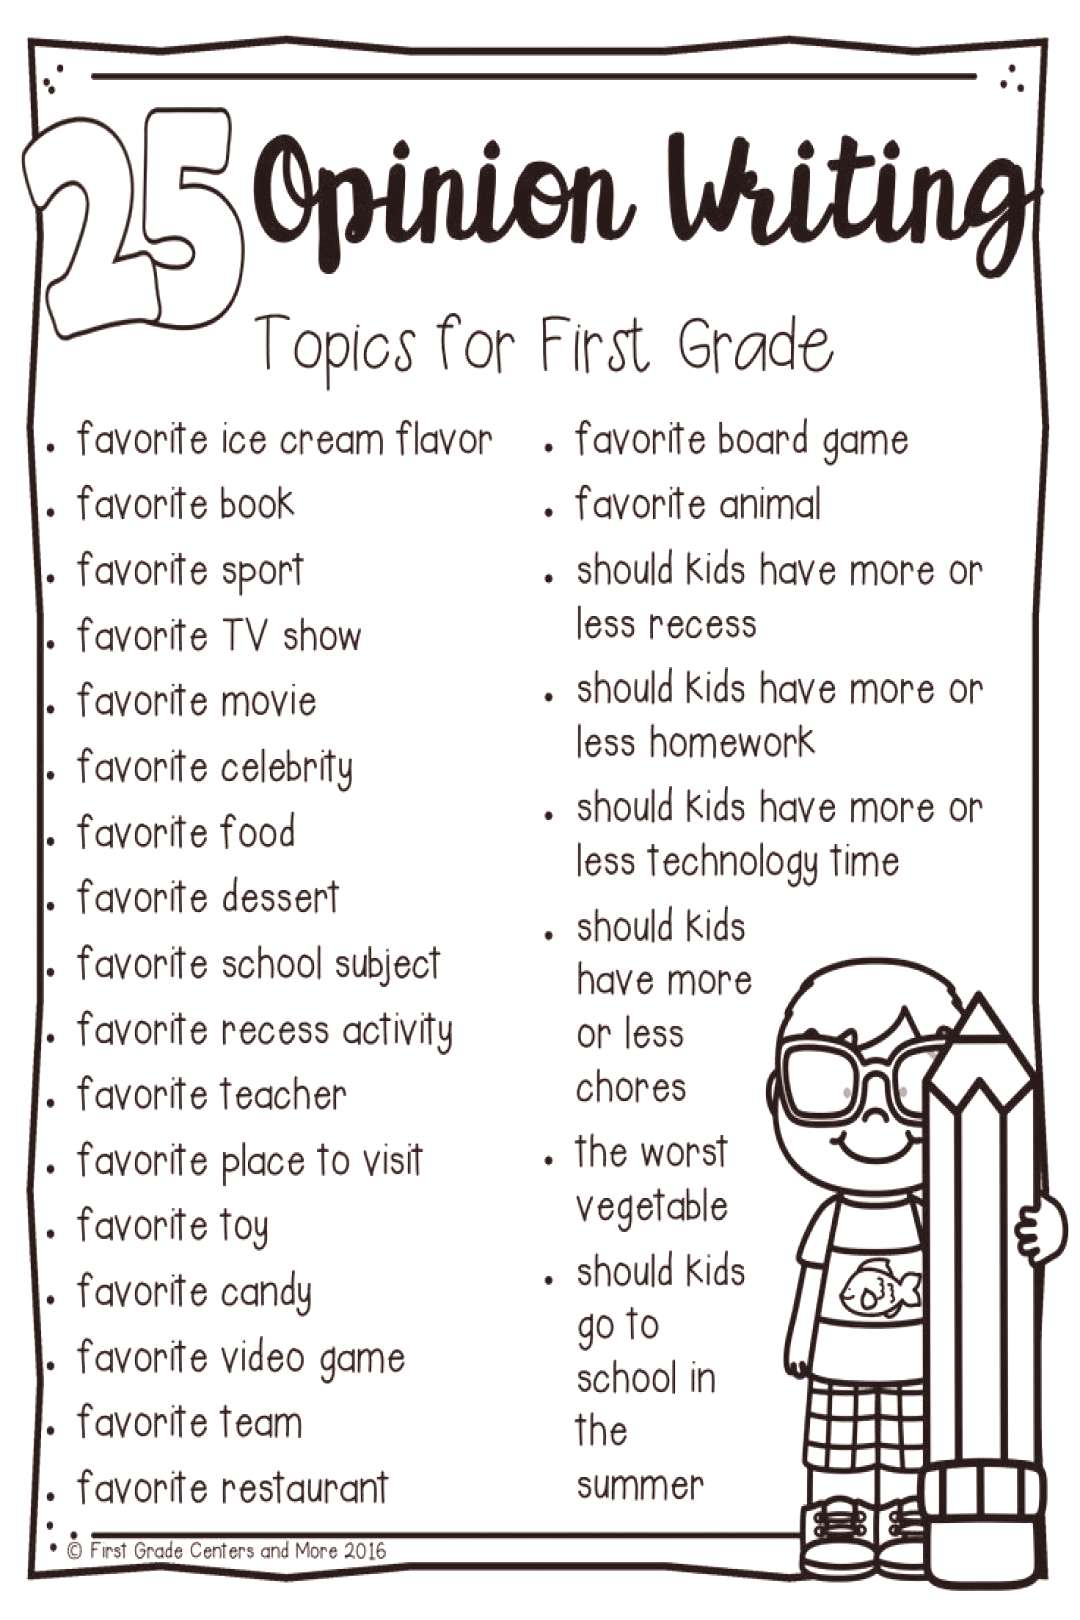 25 opinion writing topics for first grade.pdf - Google Drive